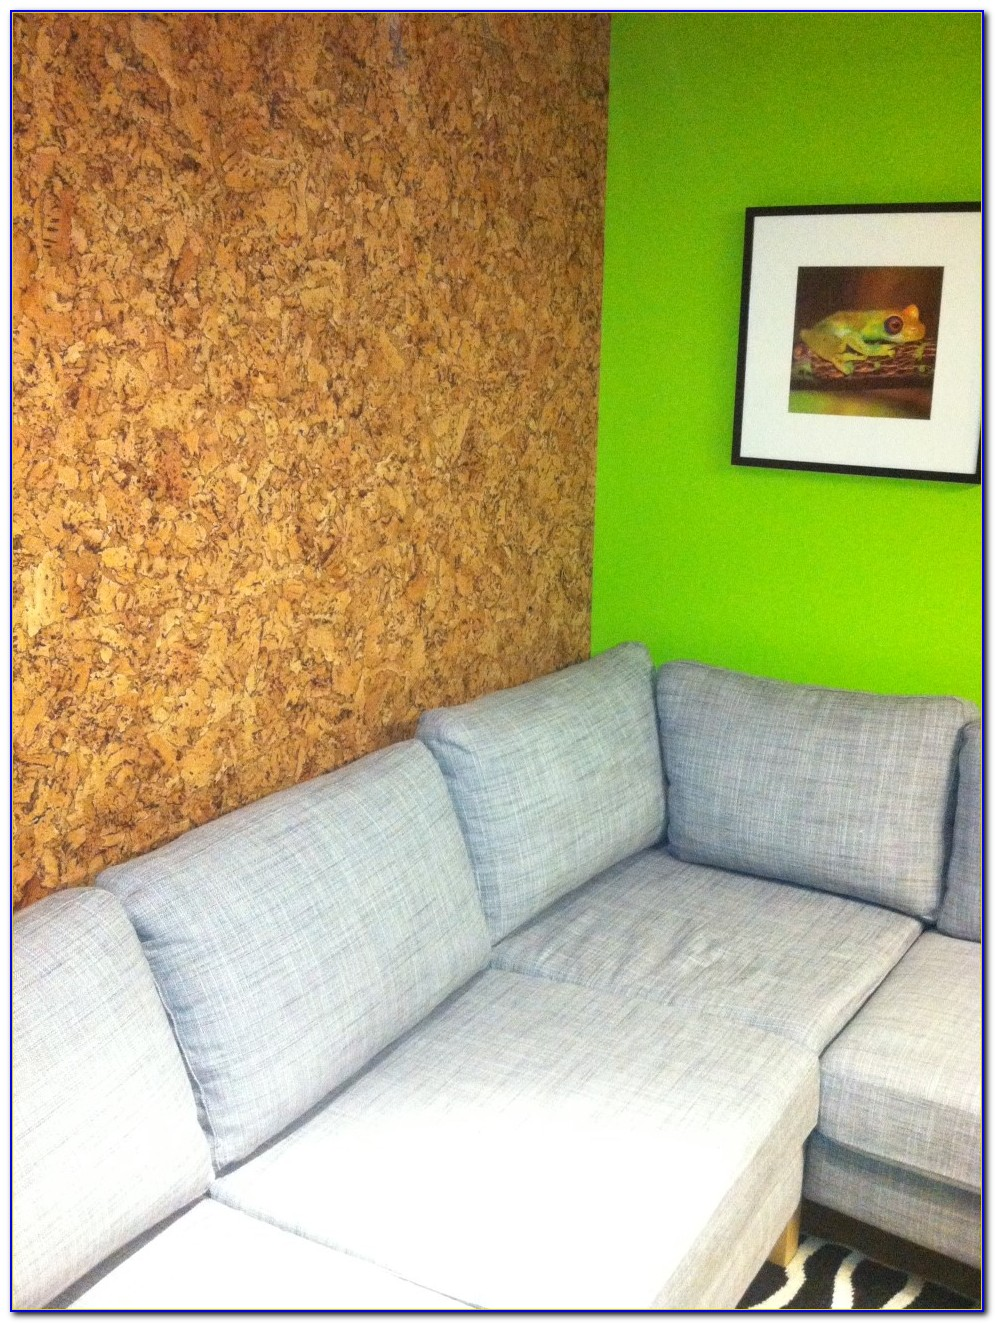 Cork Tiles For Soundproofing Walls